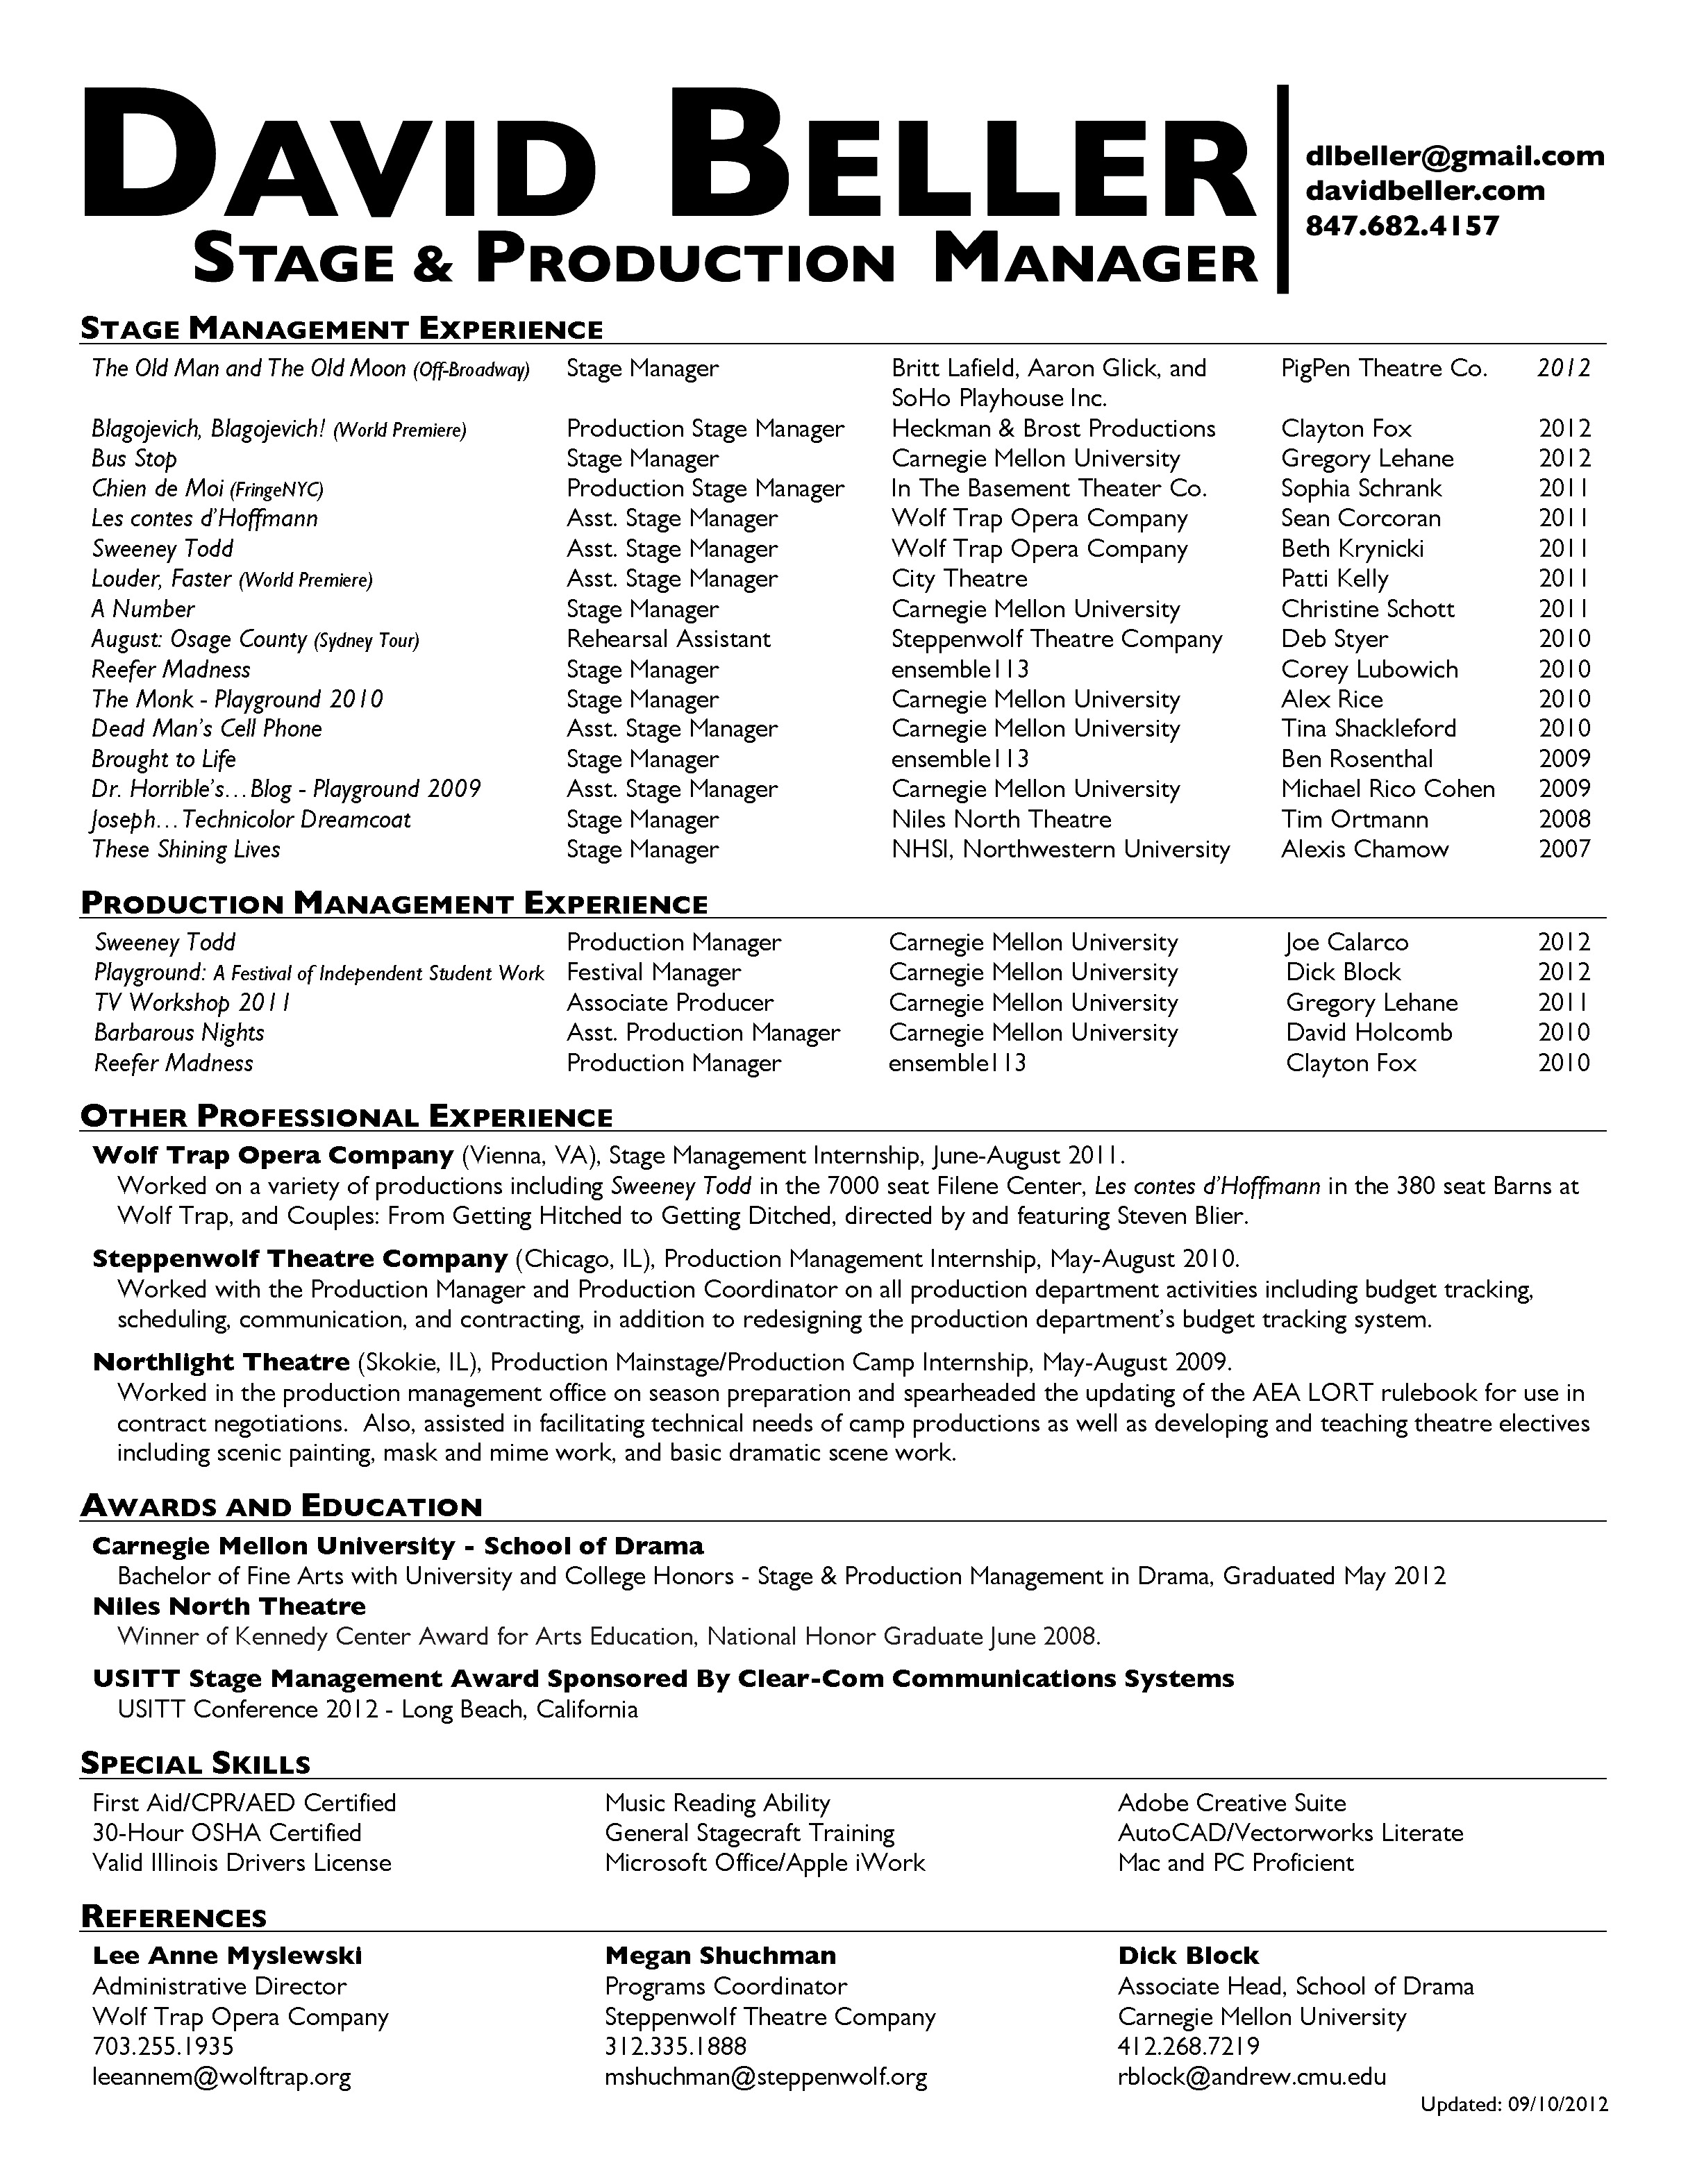 Stage Manager Resume Template - Stagehand Resume Amazing Stagehand Resume Sample Model Example